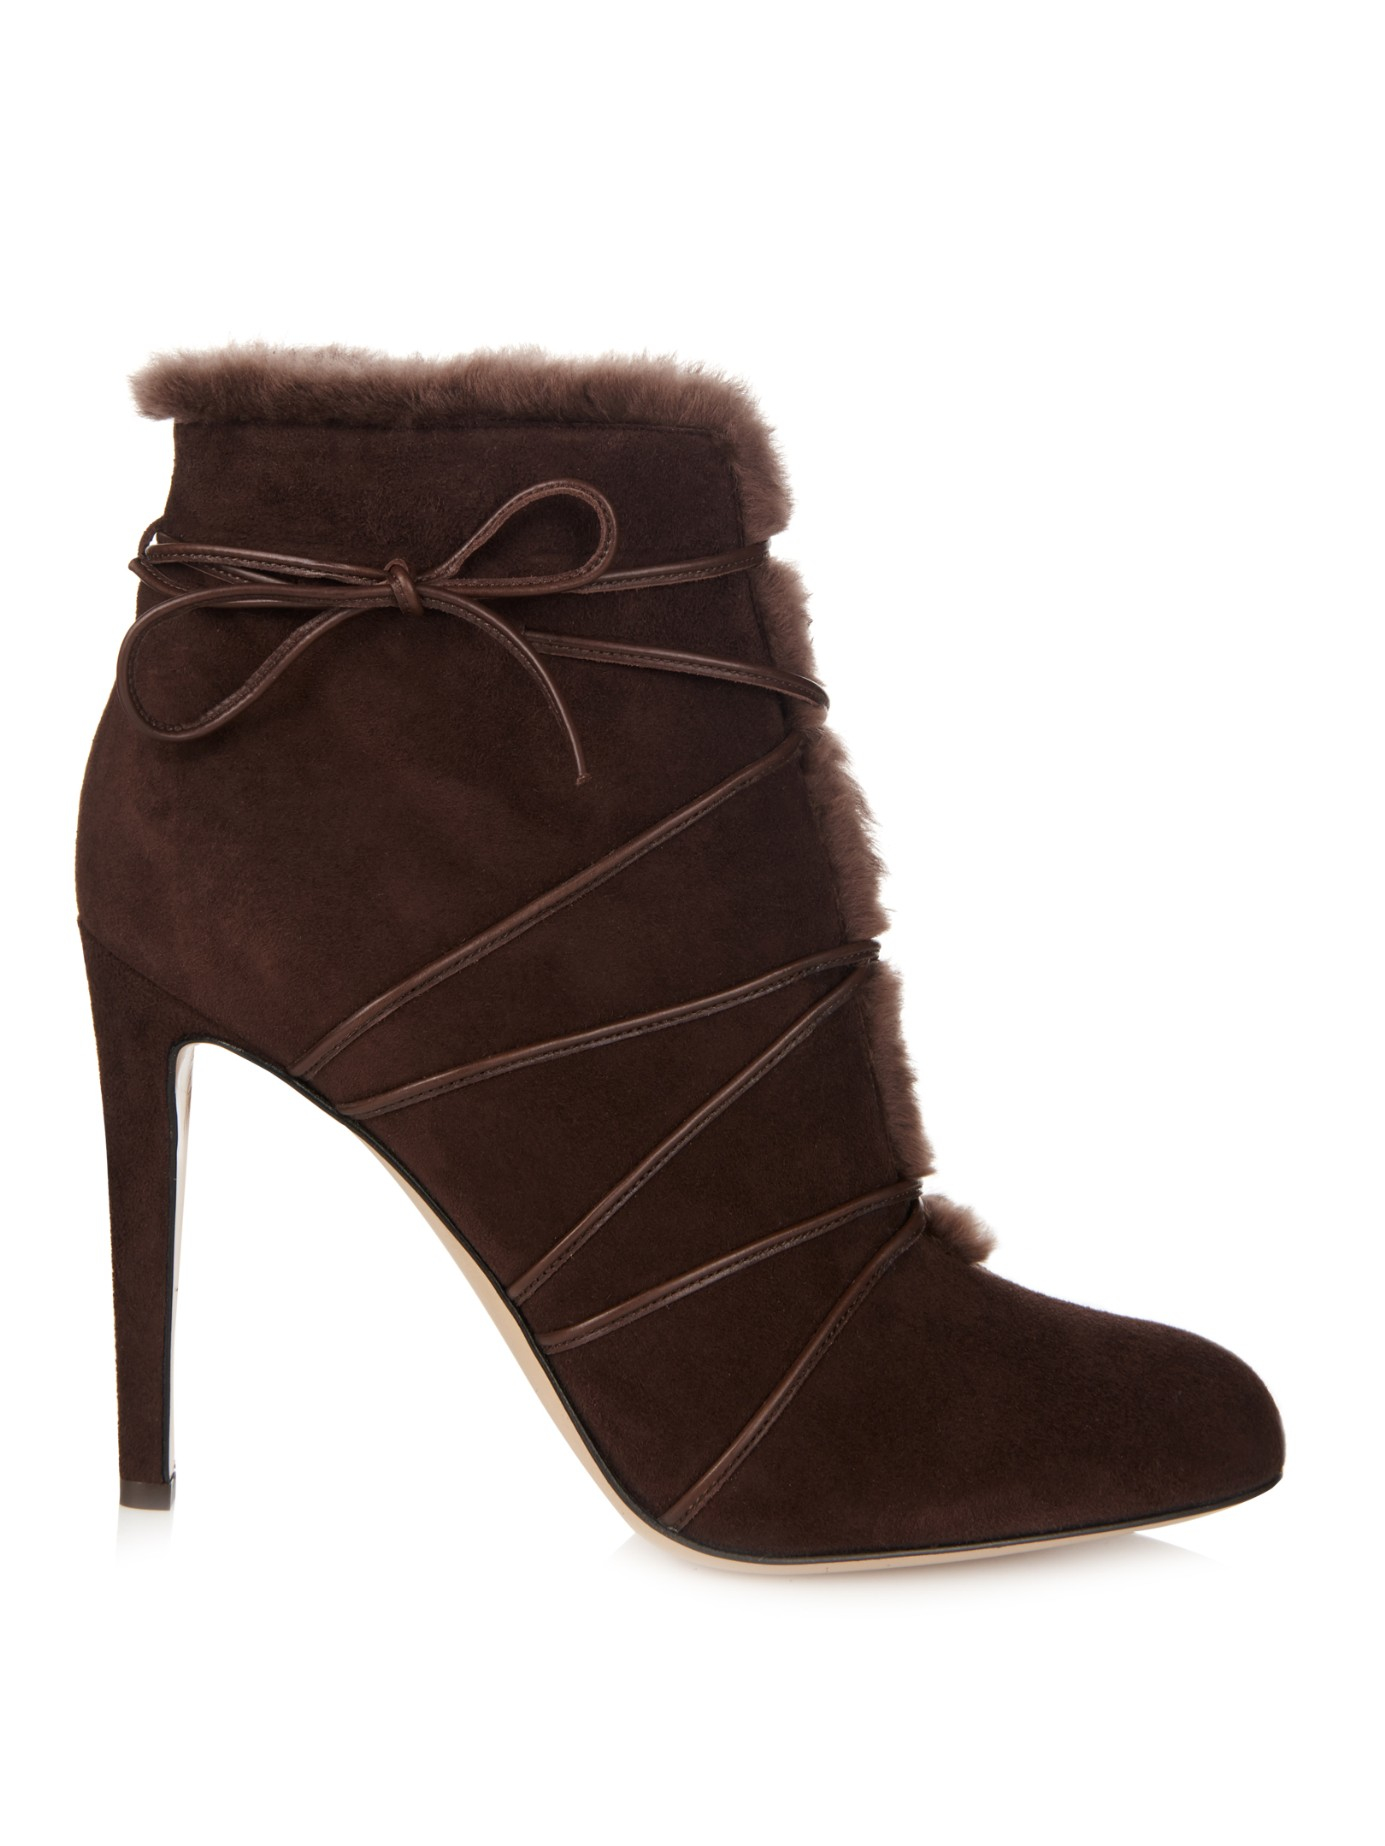 lyst gianvito rossi lace up shearling ankle boots in brown. Black Bedroom Furniture Sets. Home Design Ideas